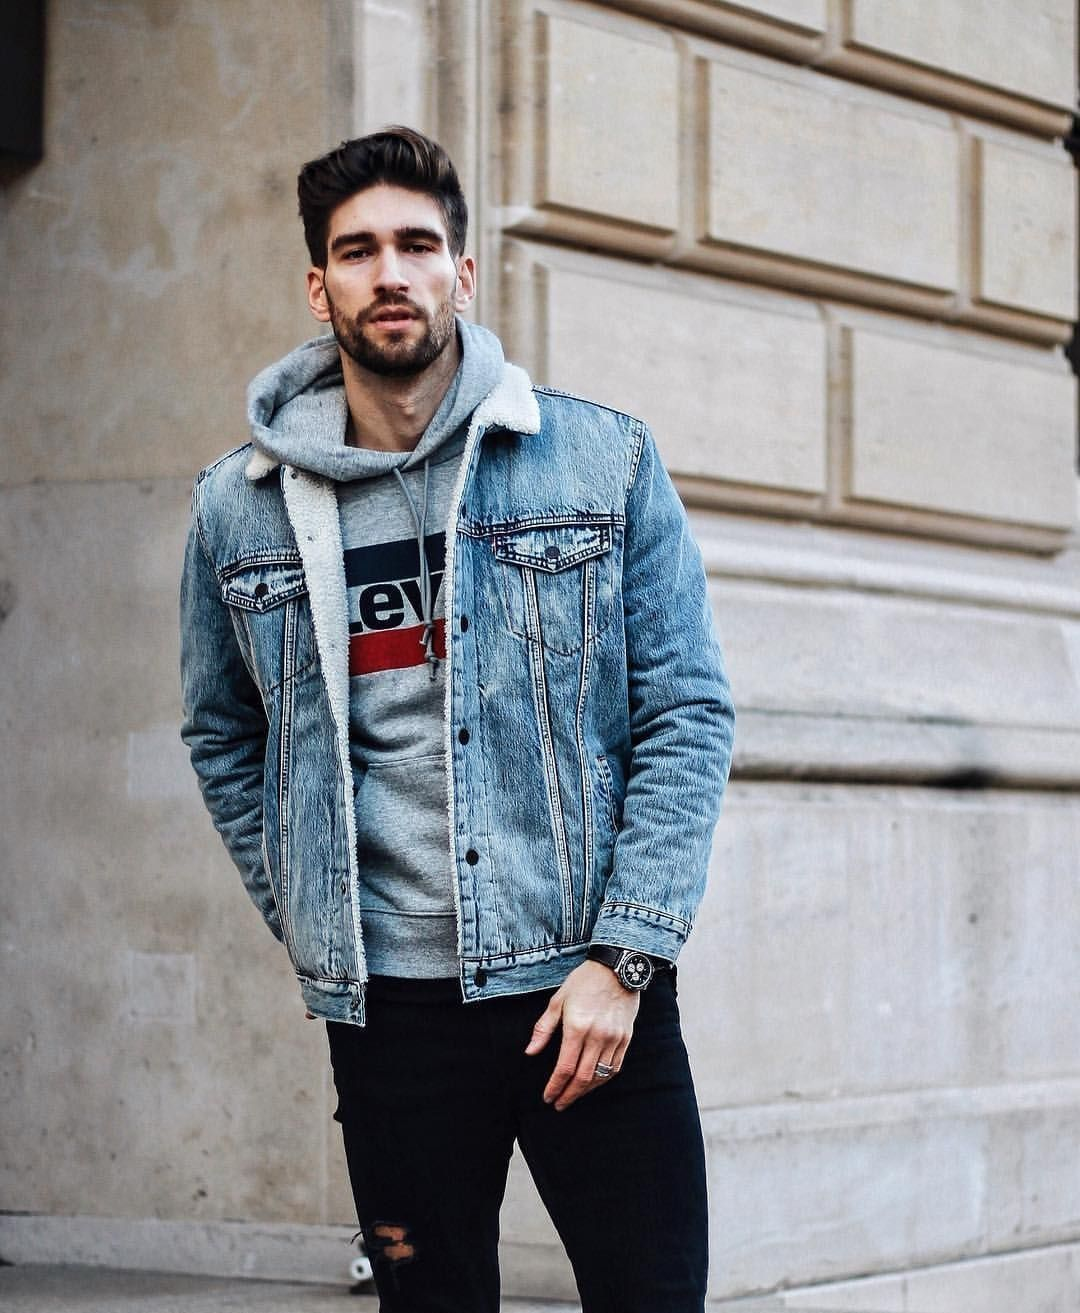 31 Stunning Men Style With Sweatshirt For Casual Outfit Hoodie Outfit Men Hoodie Fashion Jean Jacket Outfits Men [ 1313 x 1080 Pixel ]